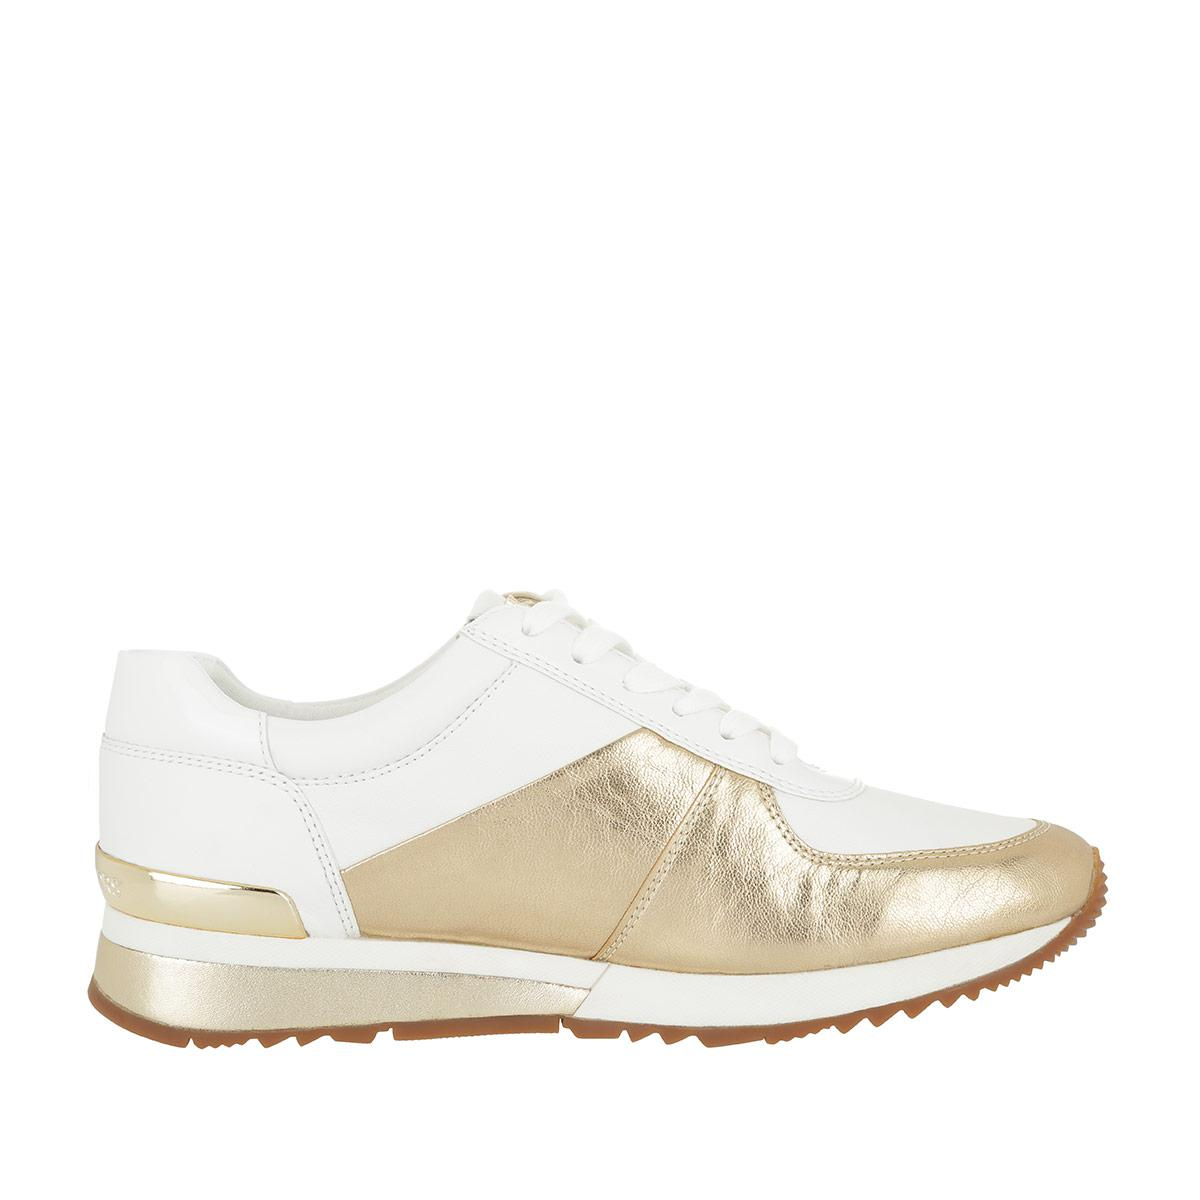 Michael Kors Allie Wrap Trainer Sneaker Leather Pale Gold/white in Metallic